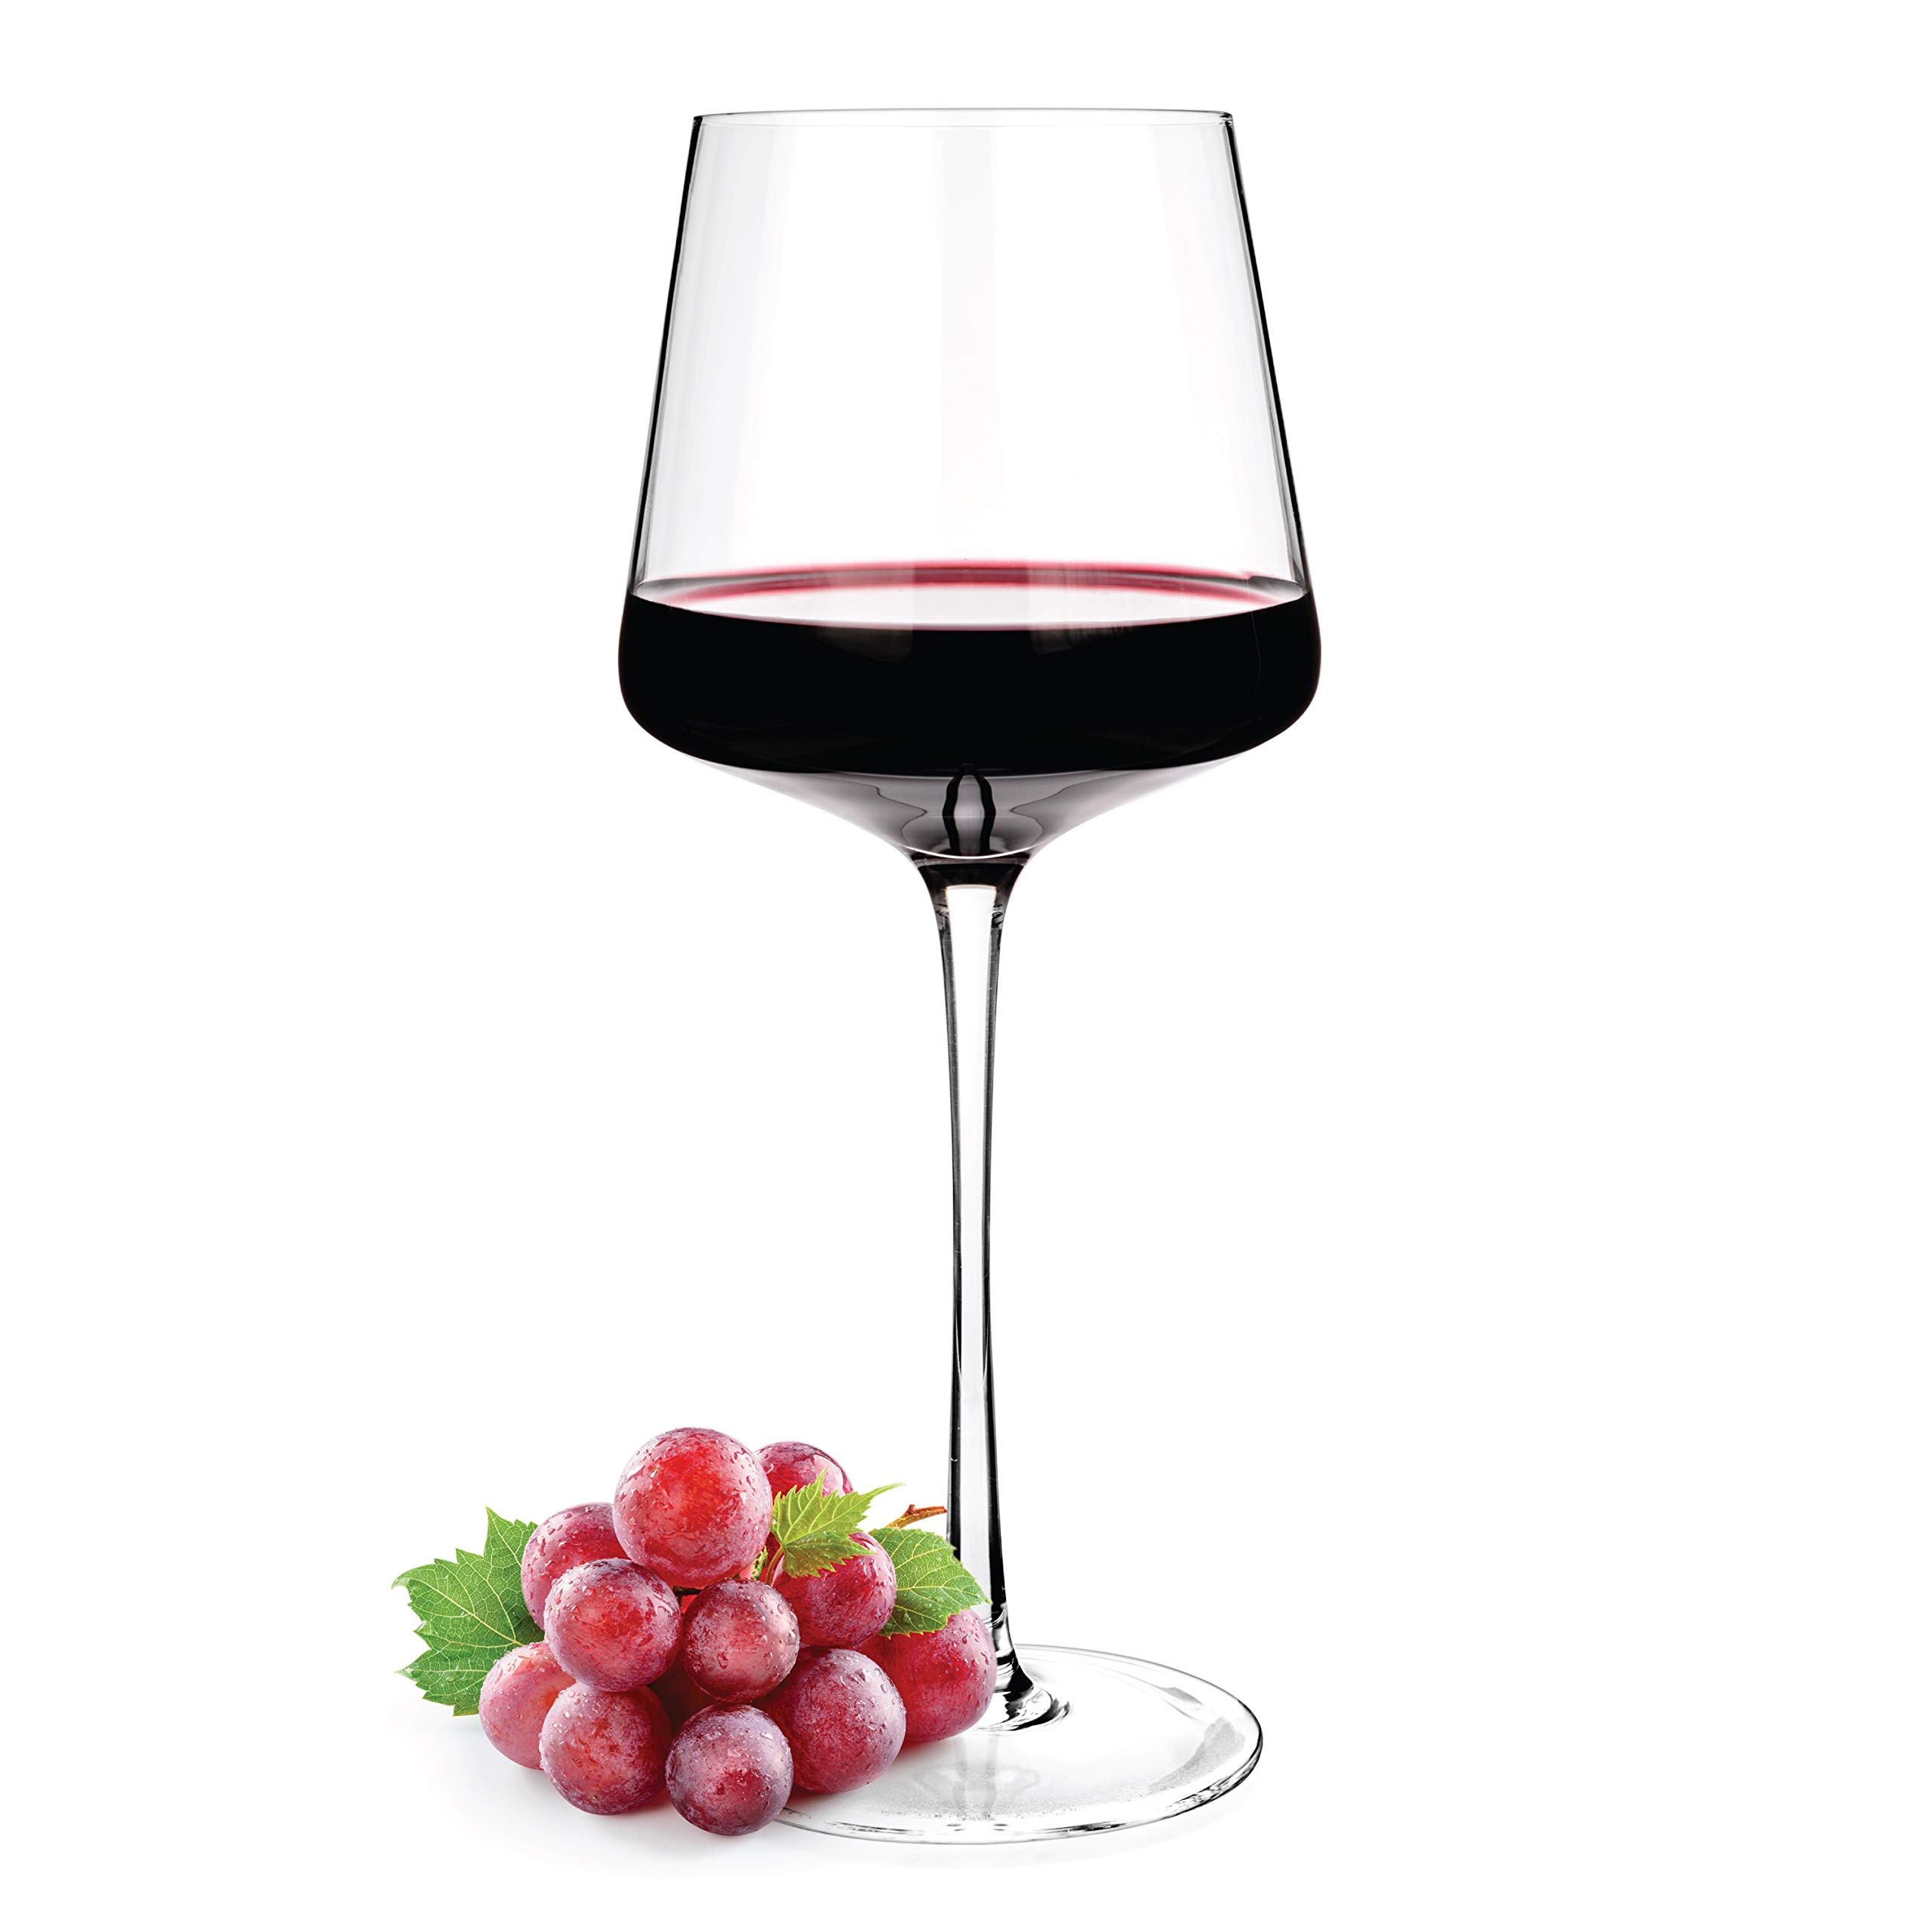 Luxbe - Crystal Wine Glasses 20.5-ounce, Set of 4 - Red or White Wine Large Glasses - 100% Lead Free Glass - Pinot Noir - Burgundy - Bordeaux - 600ml by Luxbe (Image #4)